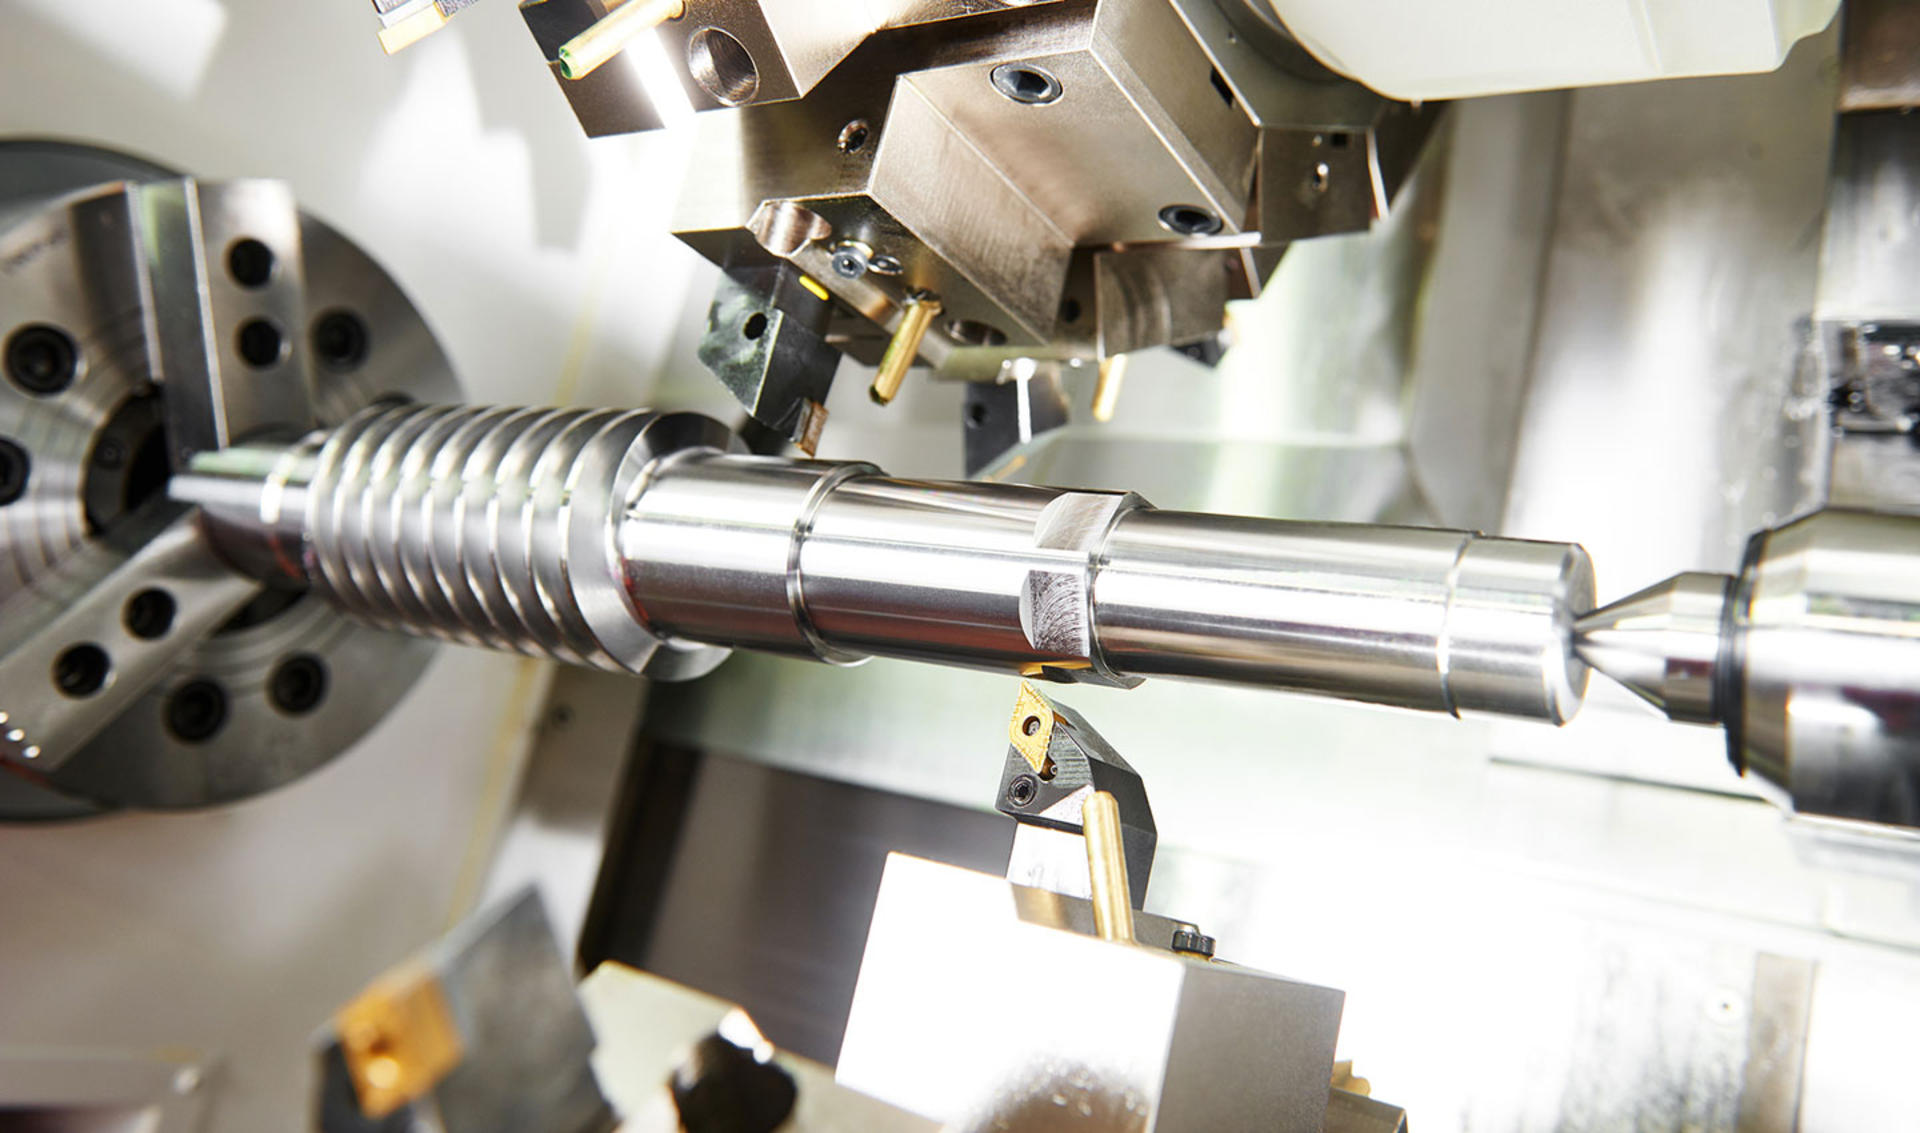 GibbsCAM MTM (Multi-Task Machining)